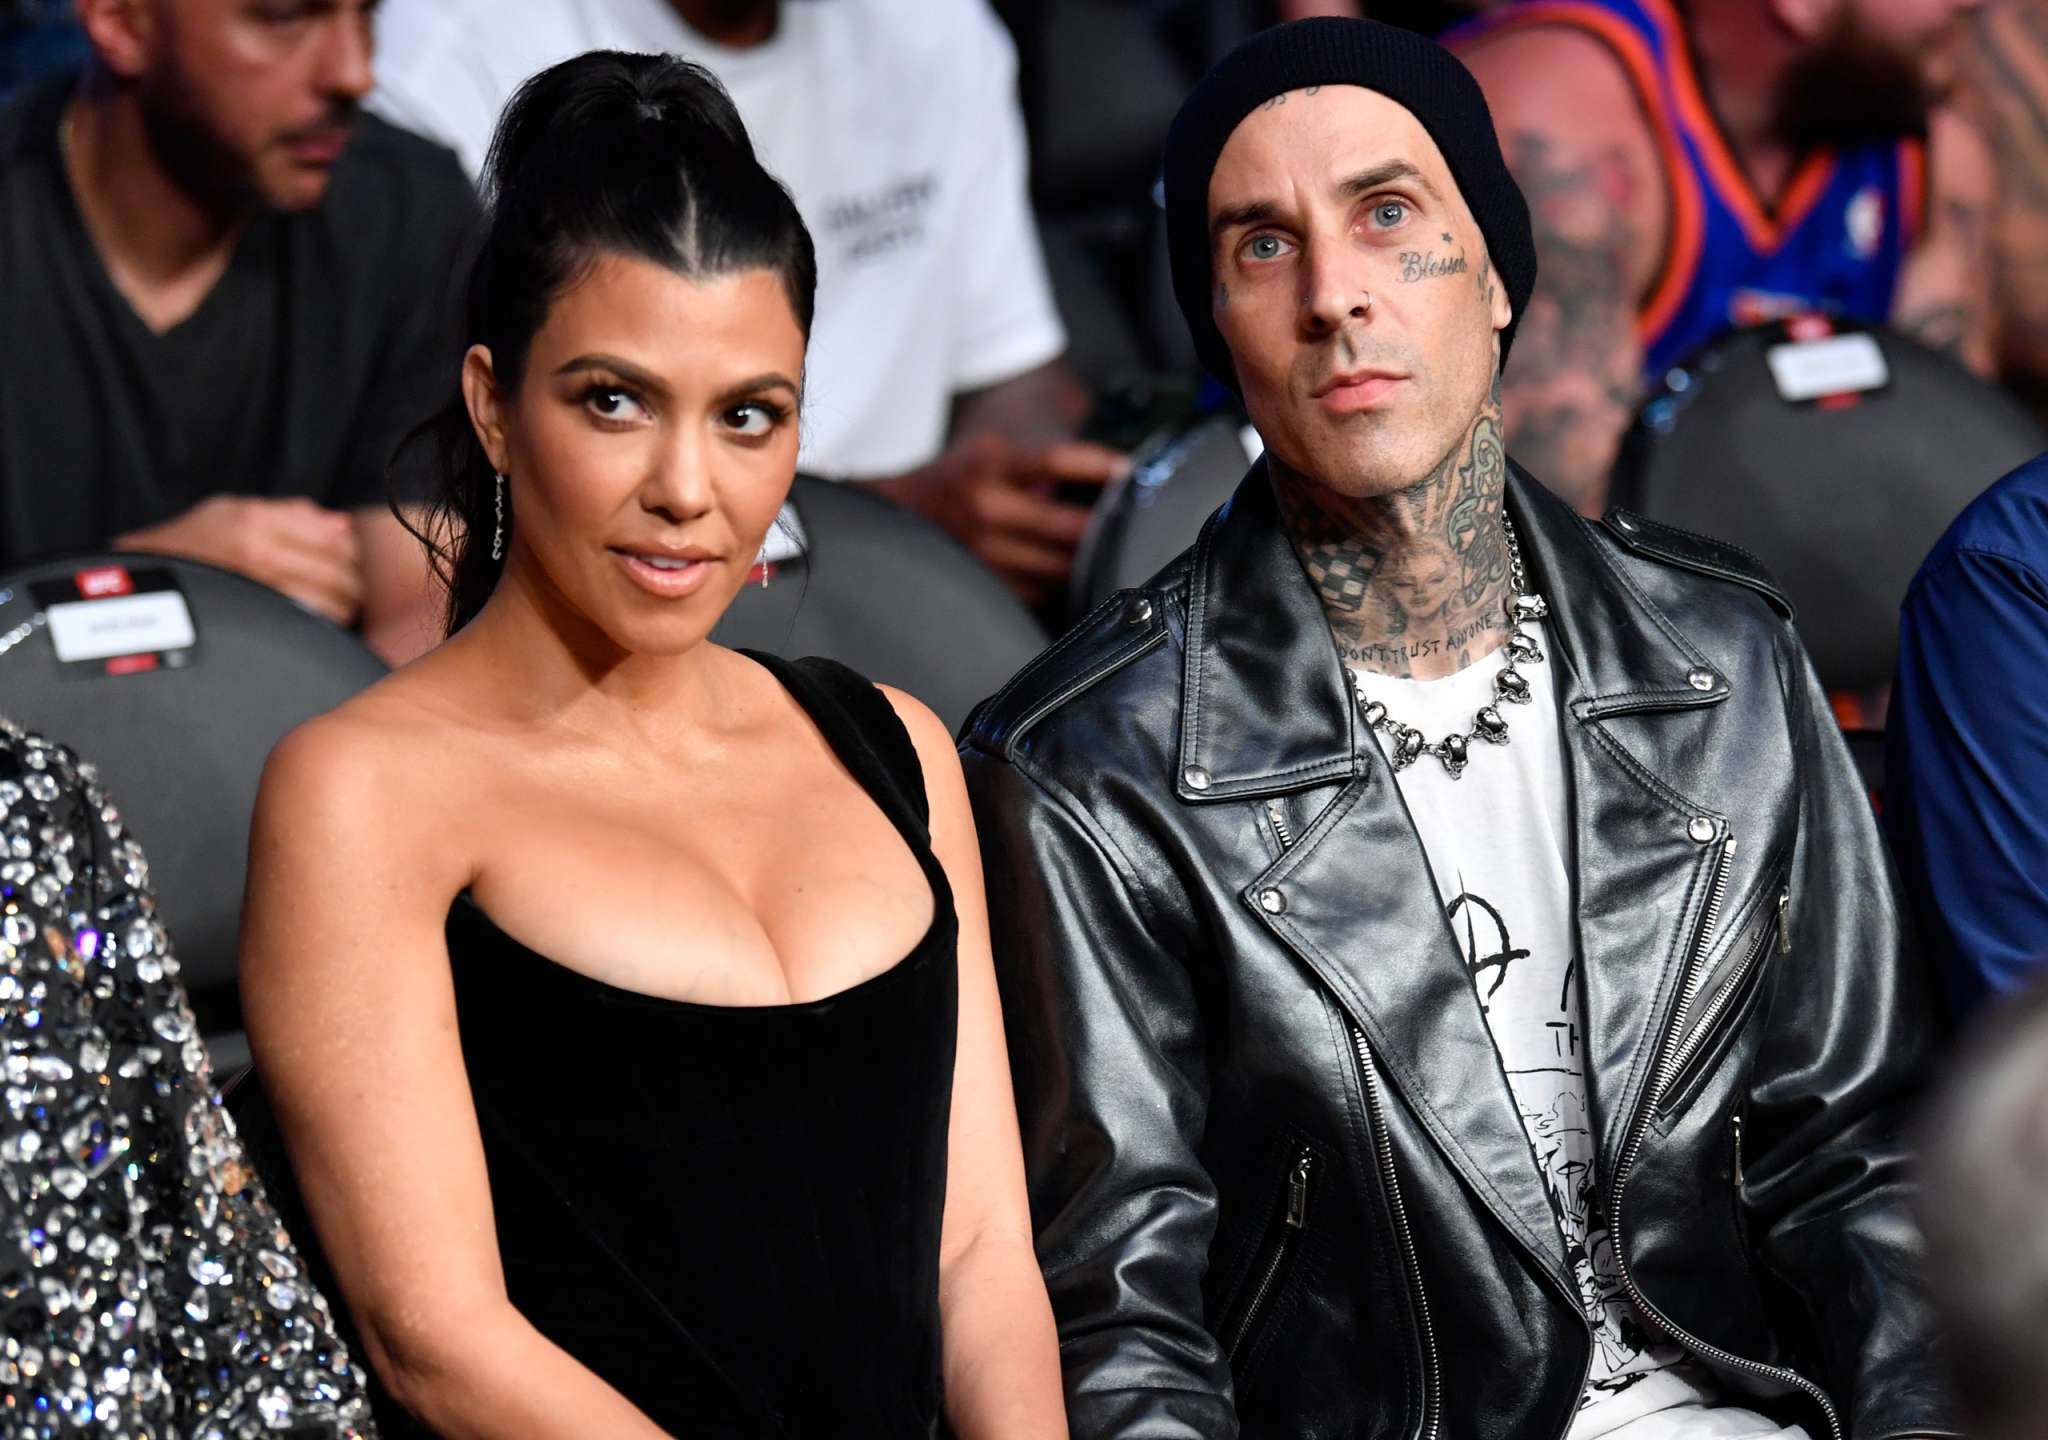 kuwtk-kourtney-kardashian-and-travis-barker-inside-their-plans-for-marriage-amid-rumors-they-eloped-in-vegas